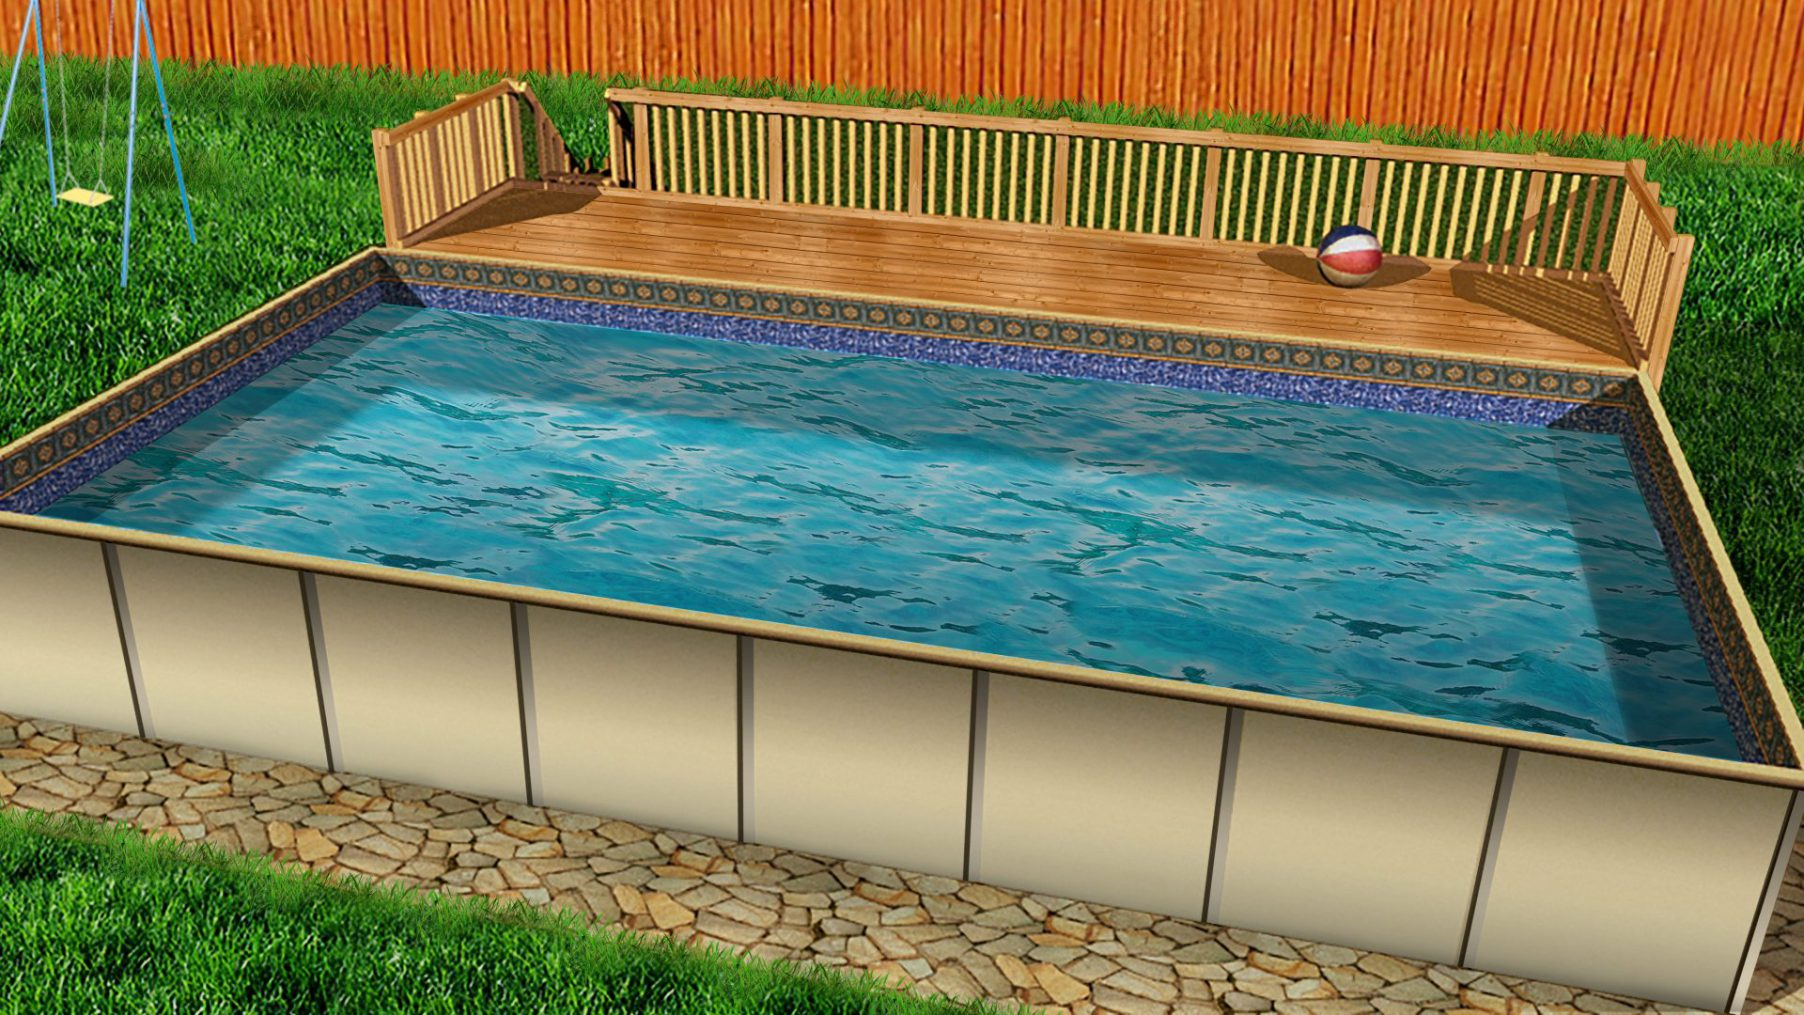 Hercules Rectangular Pool | swimming pool discounters